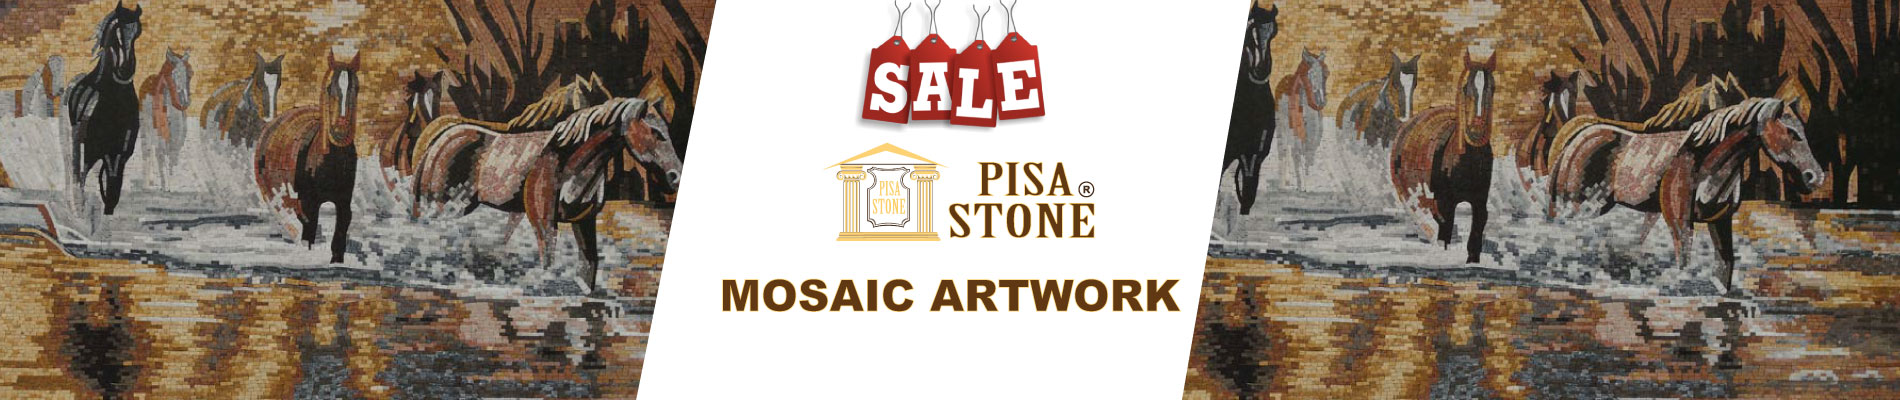 Pisa-Stone®-Mosaic-Artwork